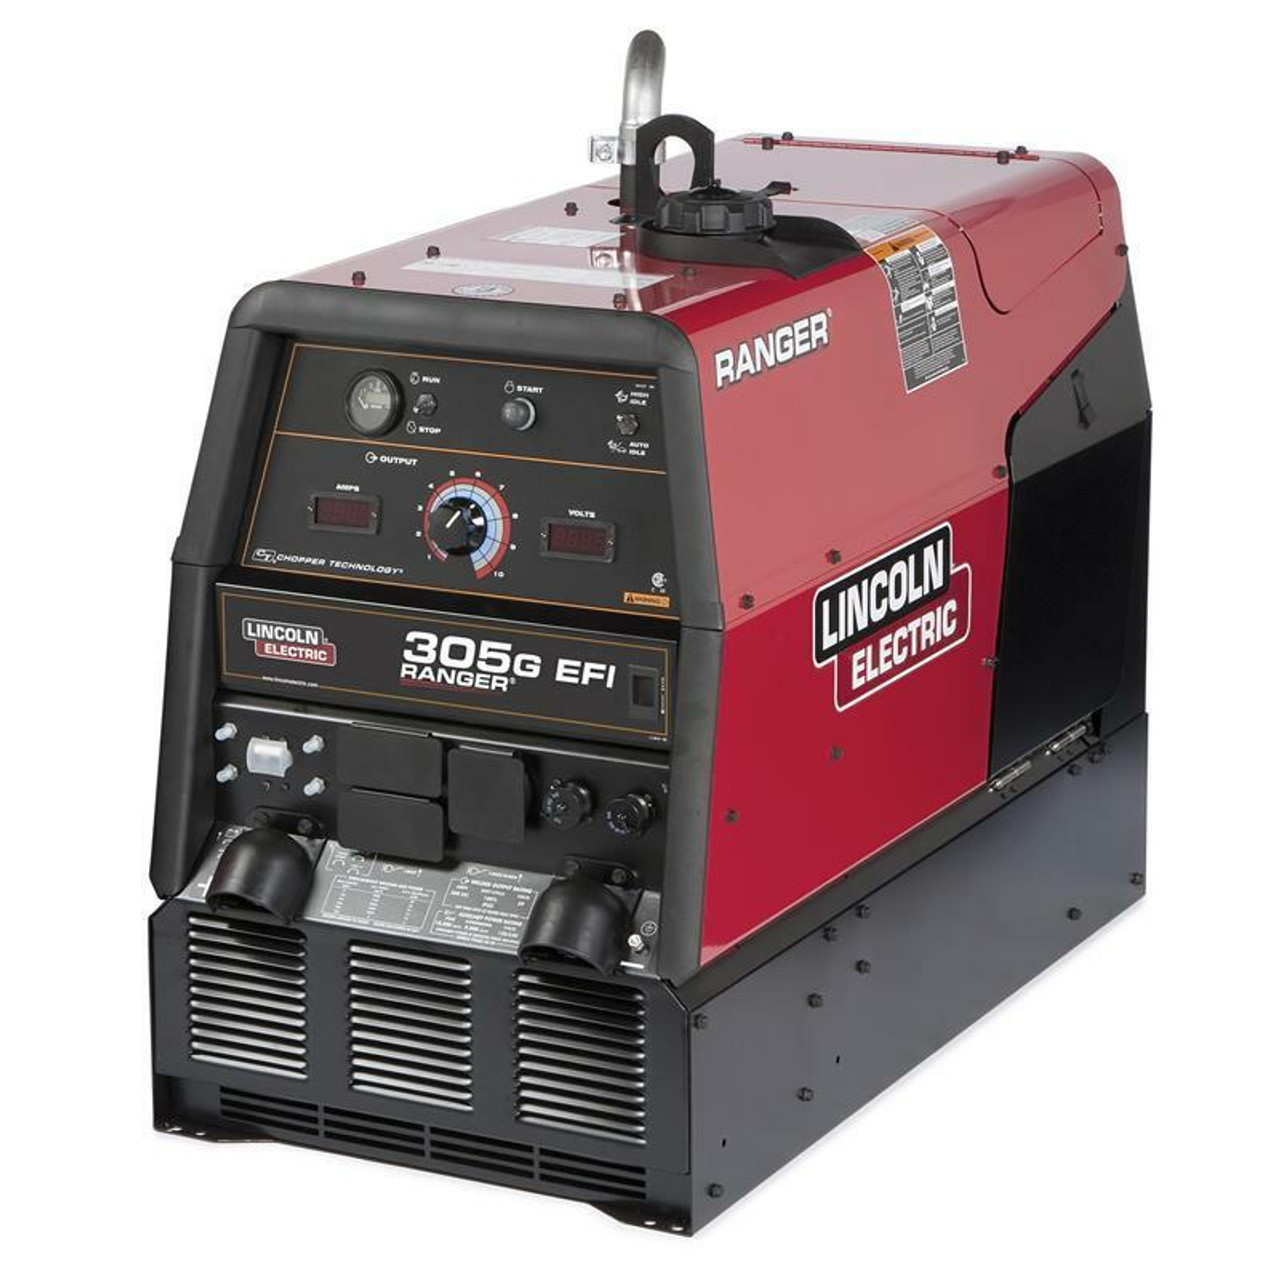 Lincoln Ranger 305 G EFI Engine Driven Welder Kohler K3928-1